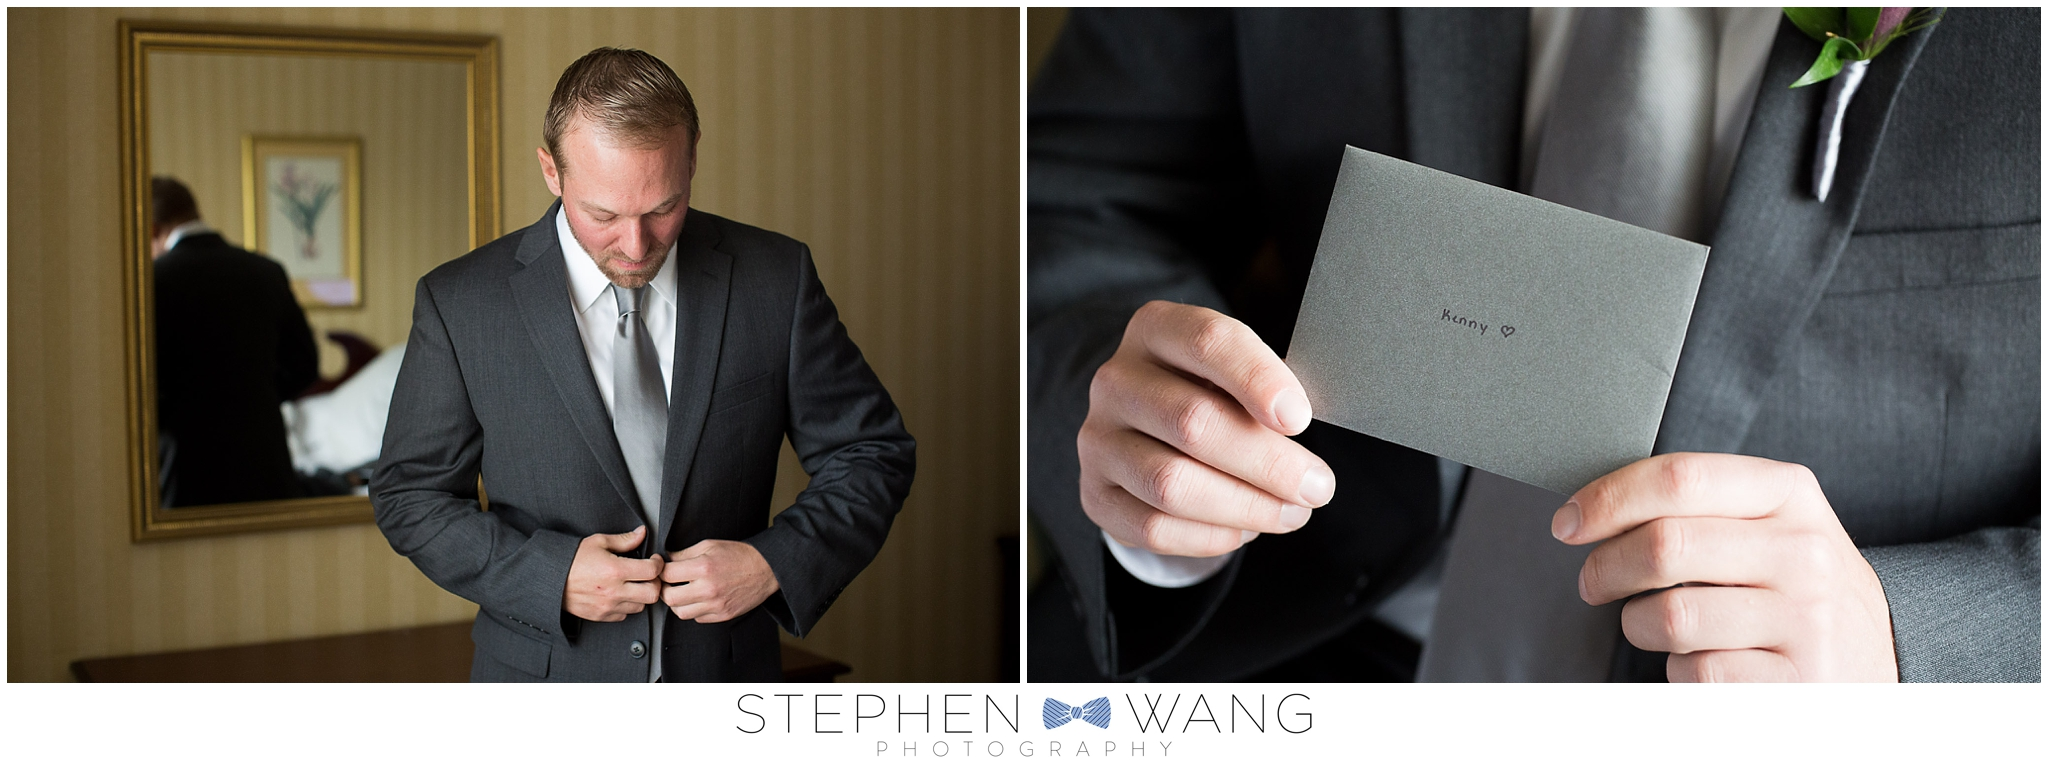 Stephen Wang Photography winter wedding connecticut east haddam riverhouse haddam ct middletown inn christmas wedding photography connecticut photographer-01-15_0011.jpg